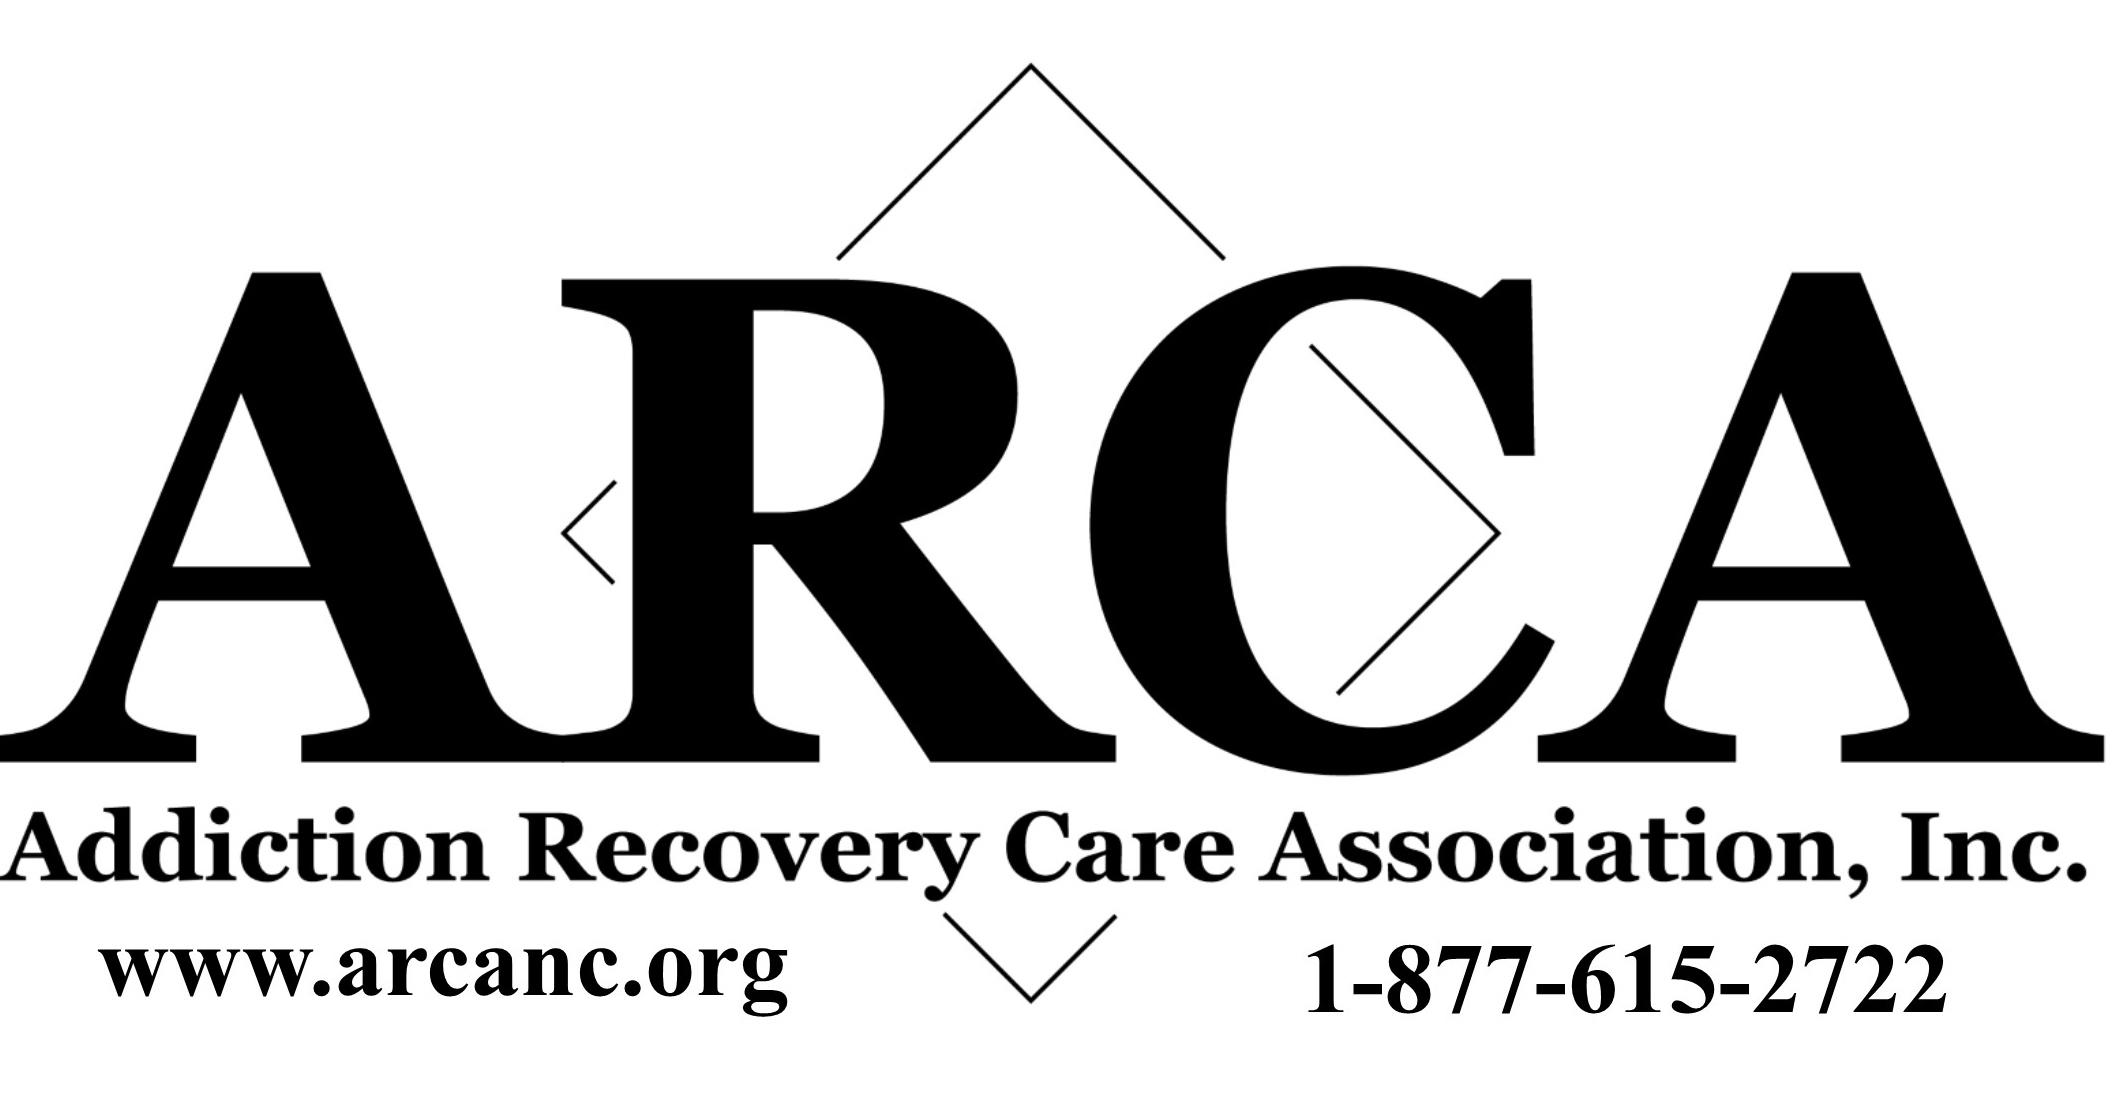 Addiction Recovery Care Association Inc